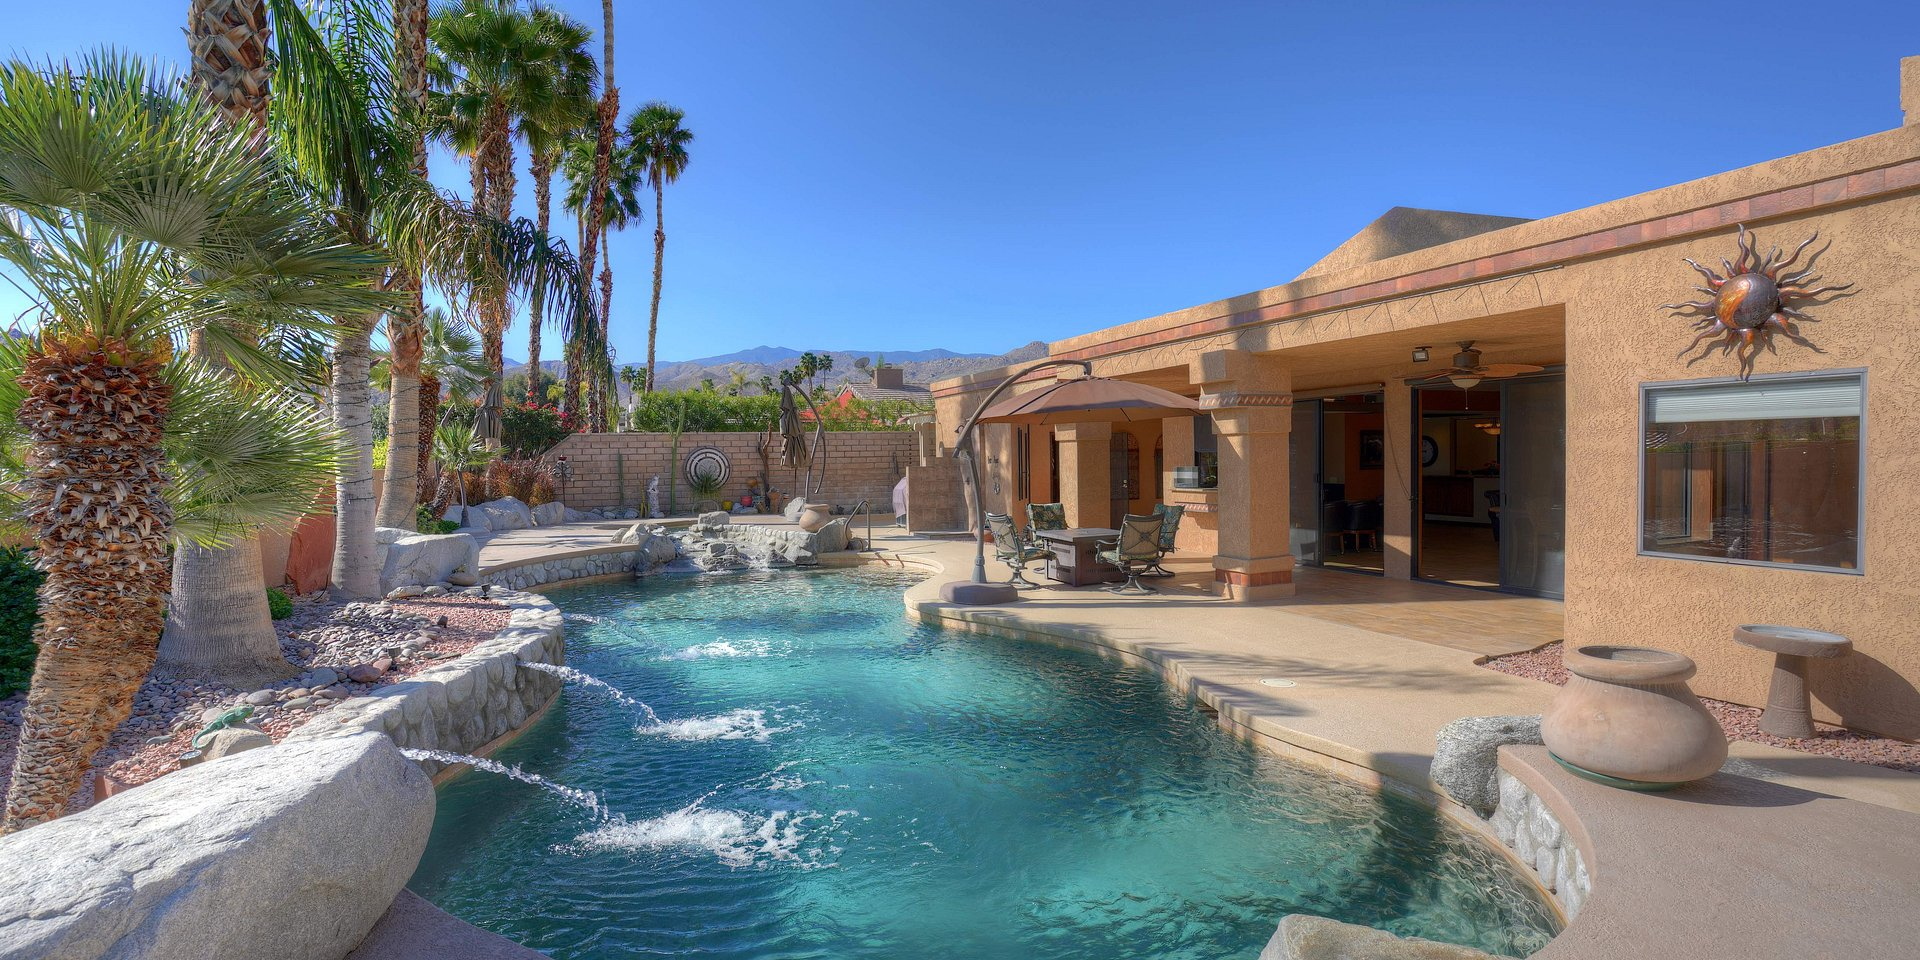 Coldwell Banker Residential Brokerage Lists Palm Desert Property for $849,999